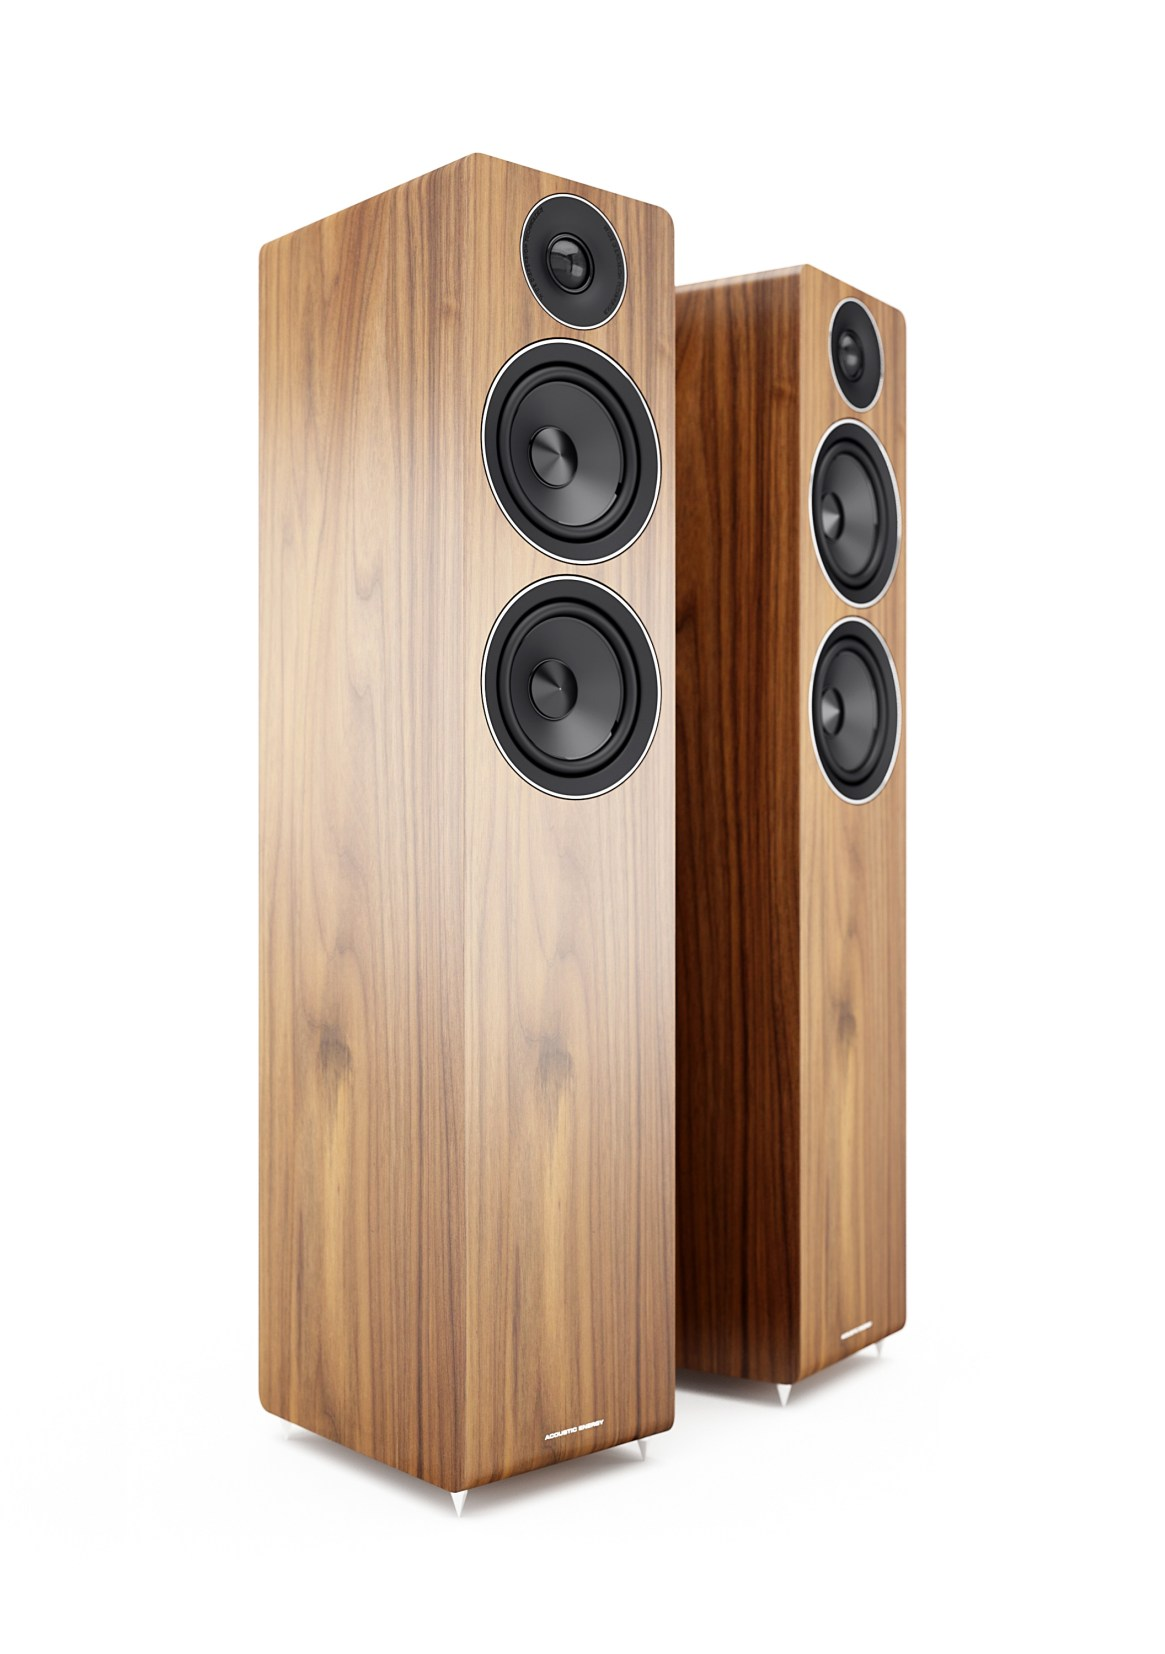 AE109 (Walnut, No Grille)